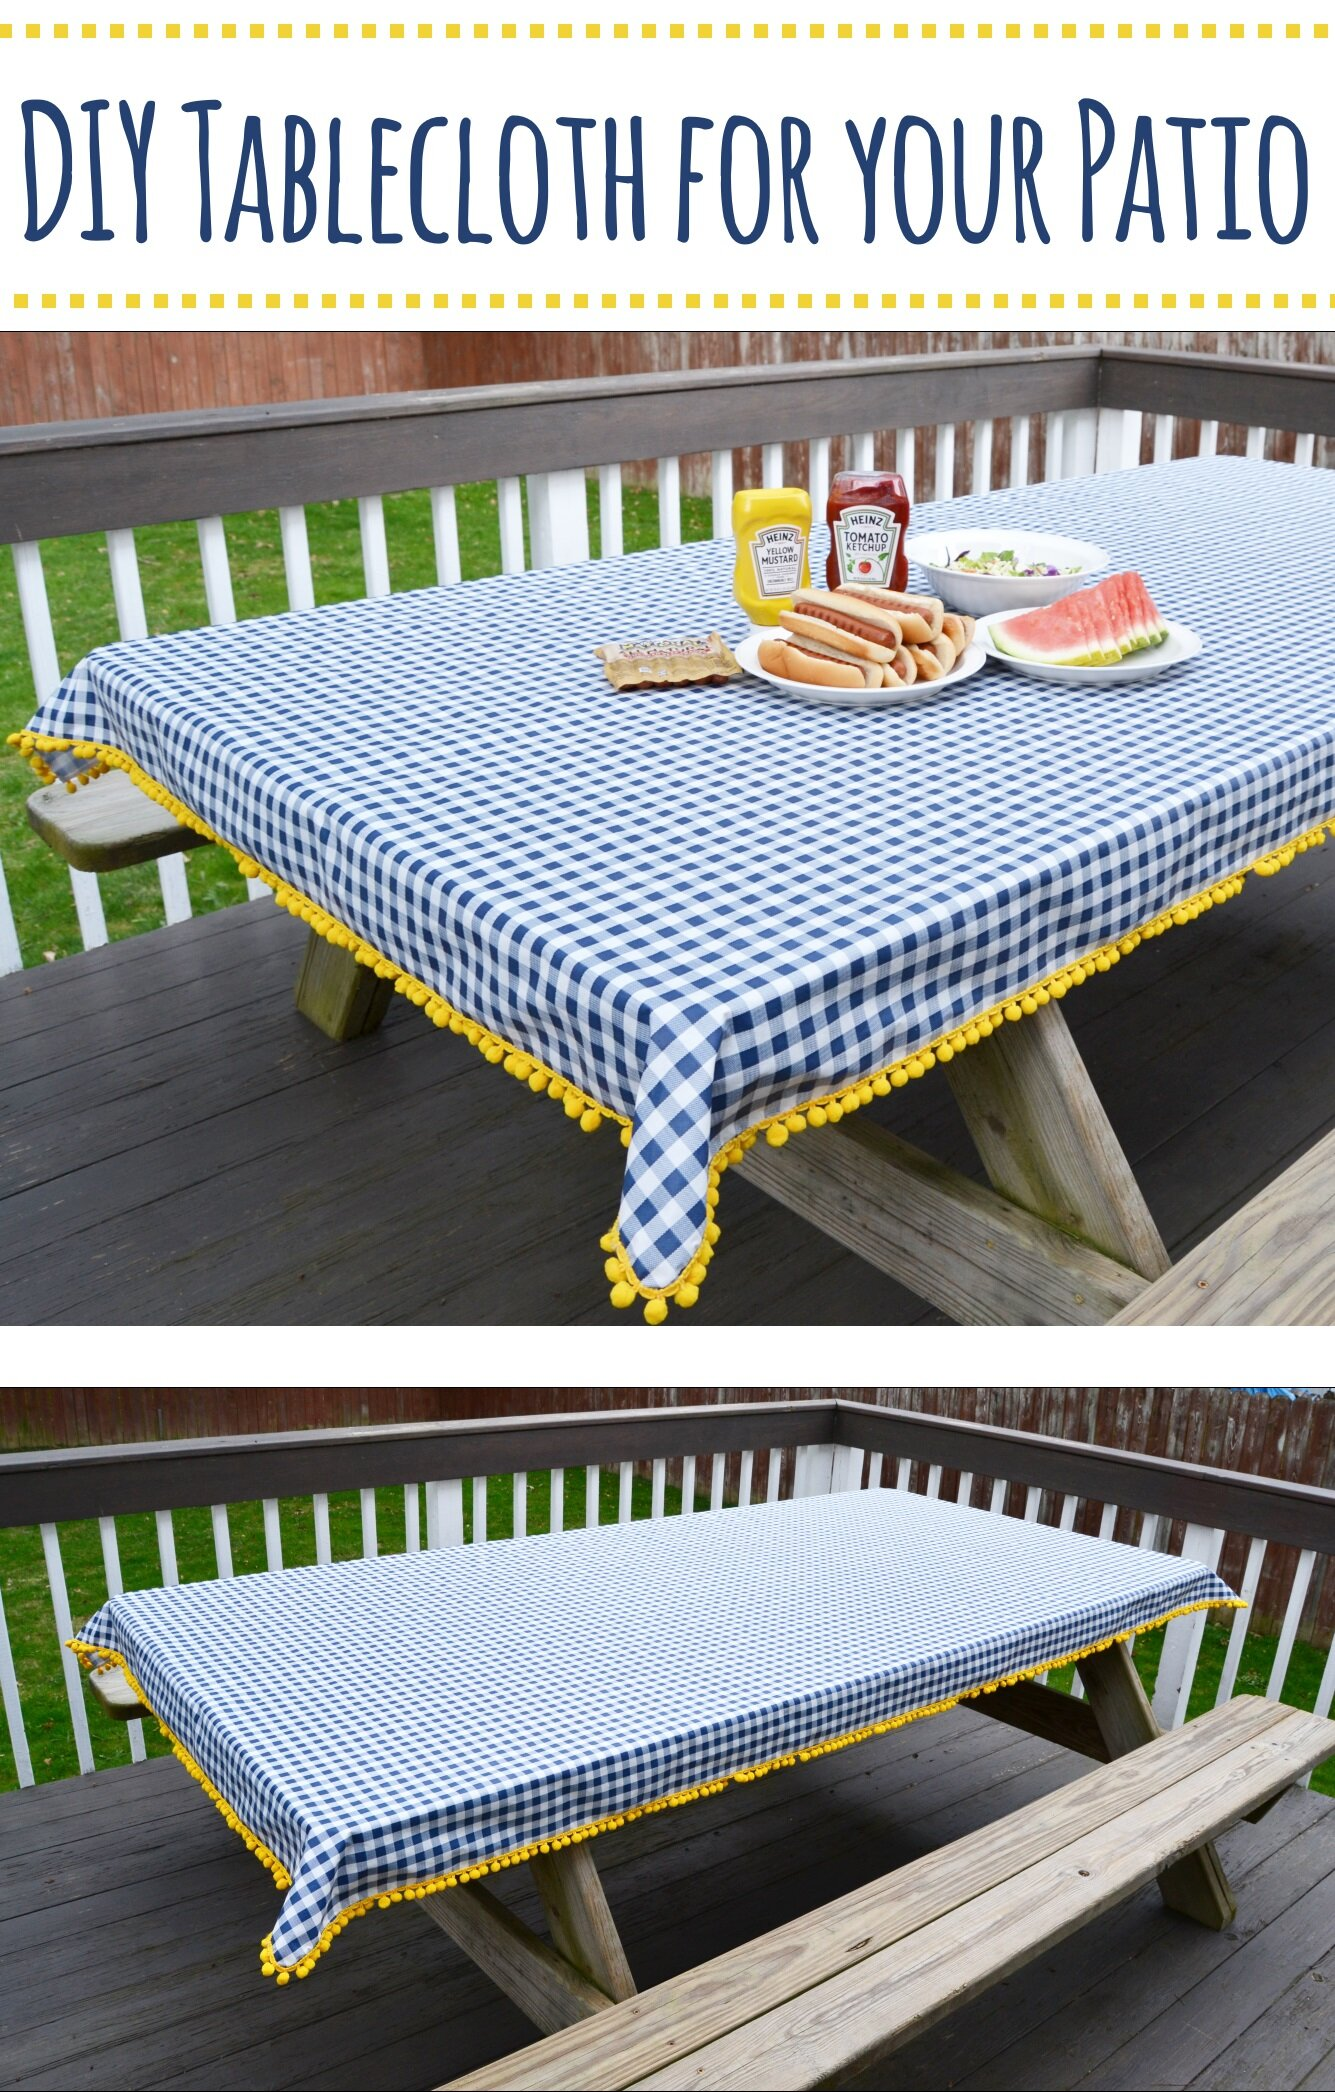 how-to-make-a-tablecloth-for-your-patio-3.jpg